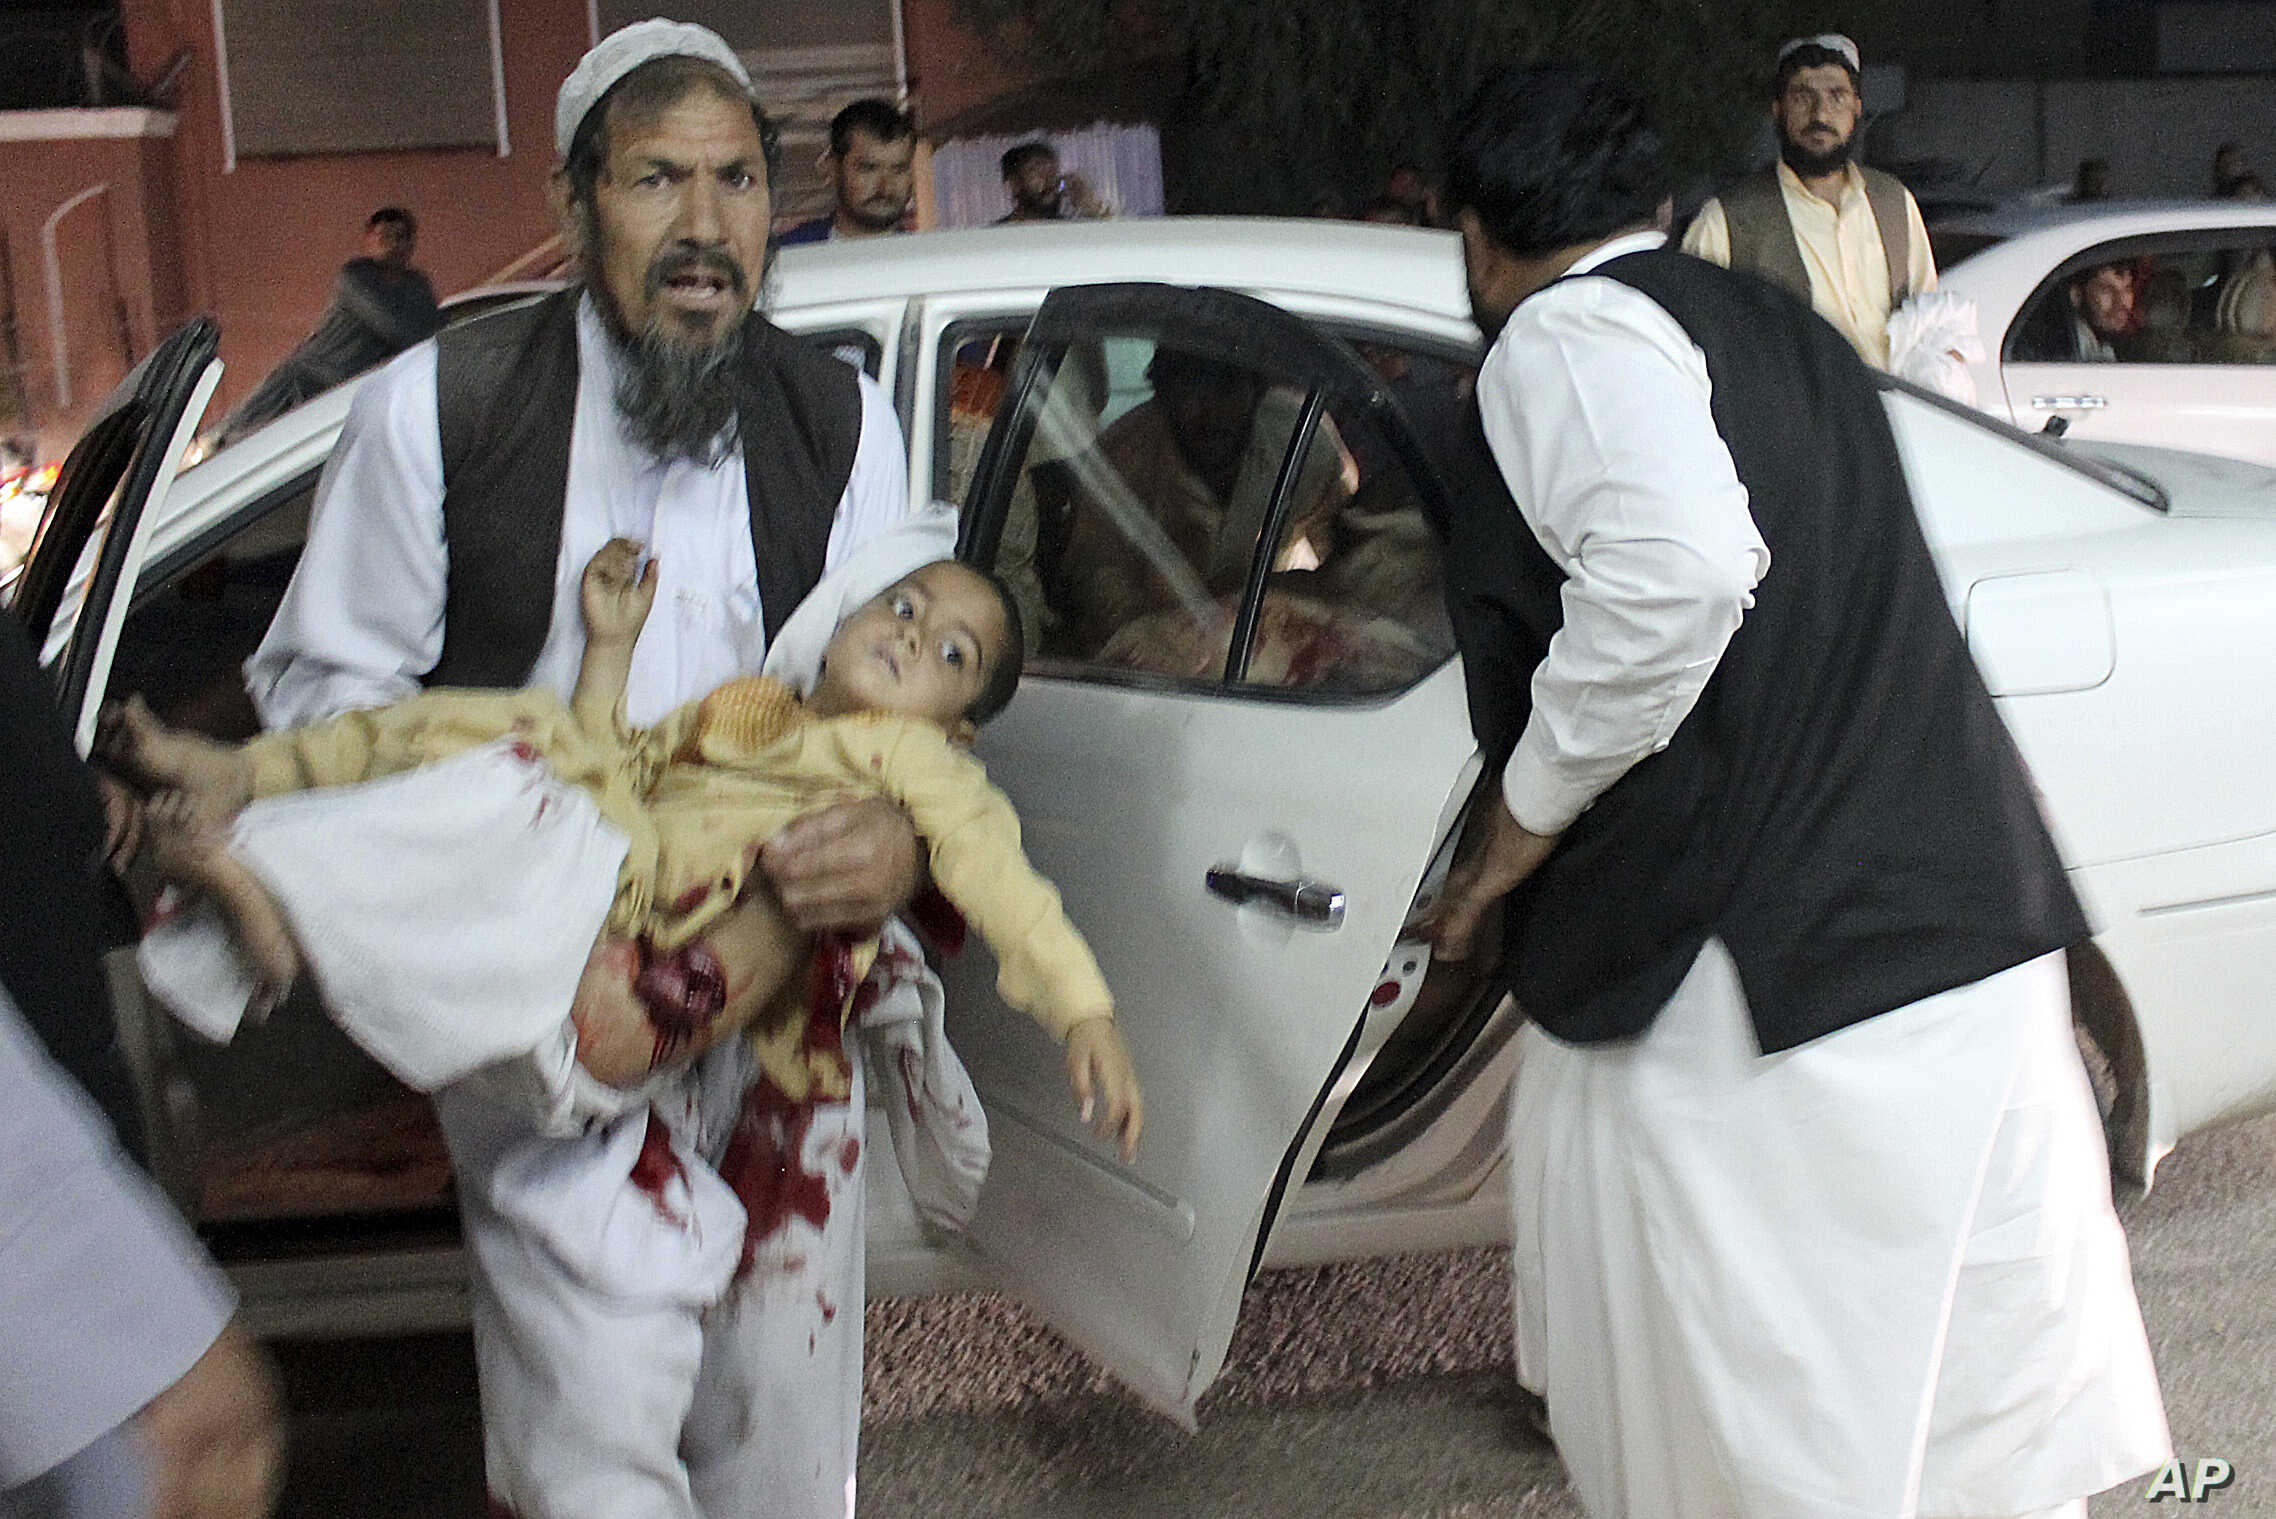 A man carries a wounded boy to a hospital after a car bombing outside a sports stadium in Lashkargah, capital city of southern Helmand province, Afghanistan, March 23, 2018. Provincial chief of police Abdul Ghafar Safi said the blast was carried out ...